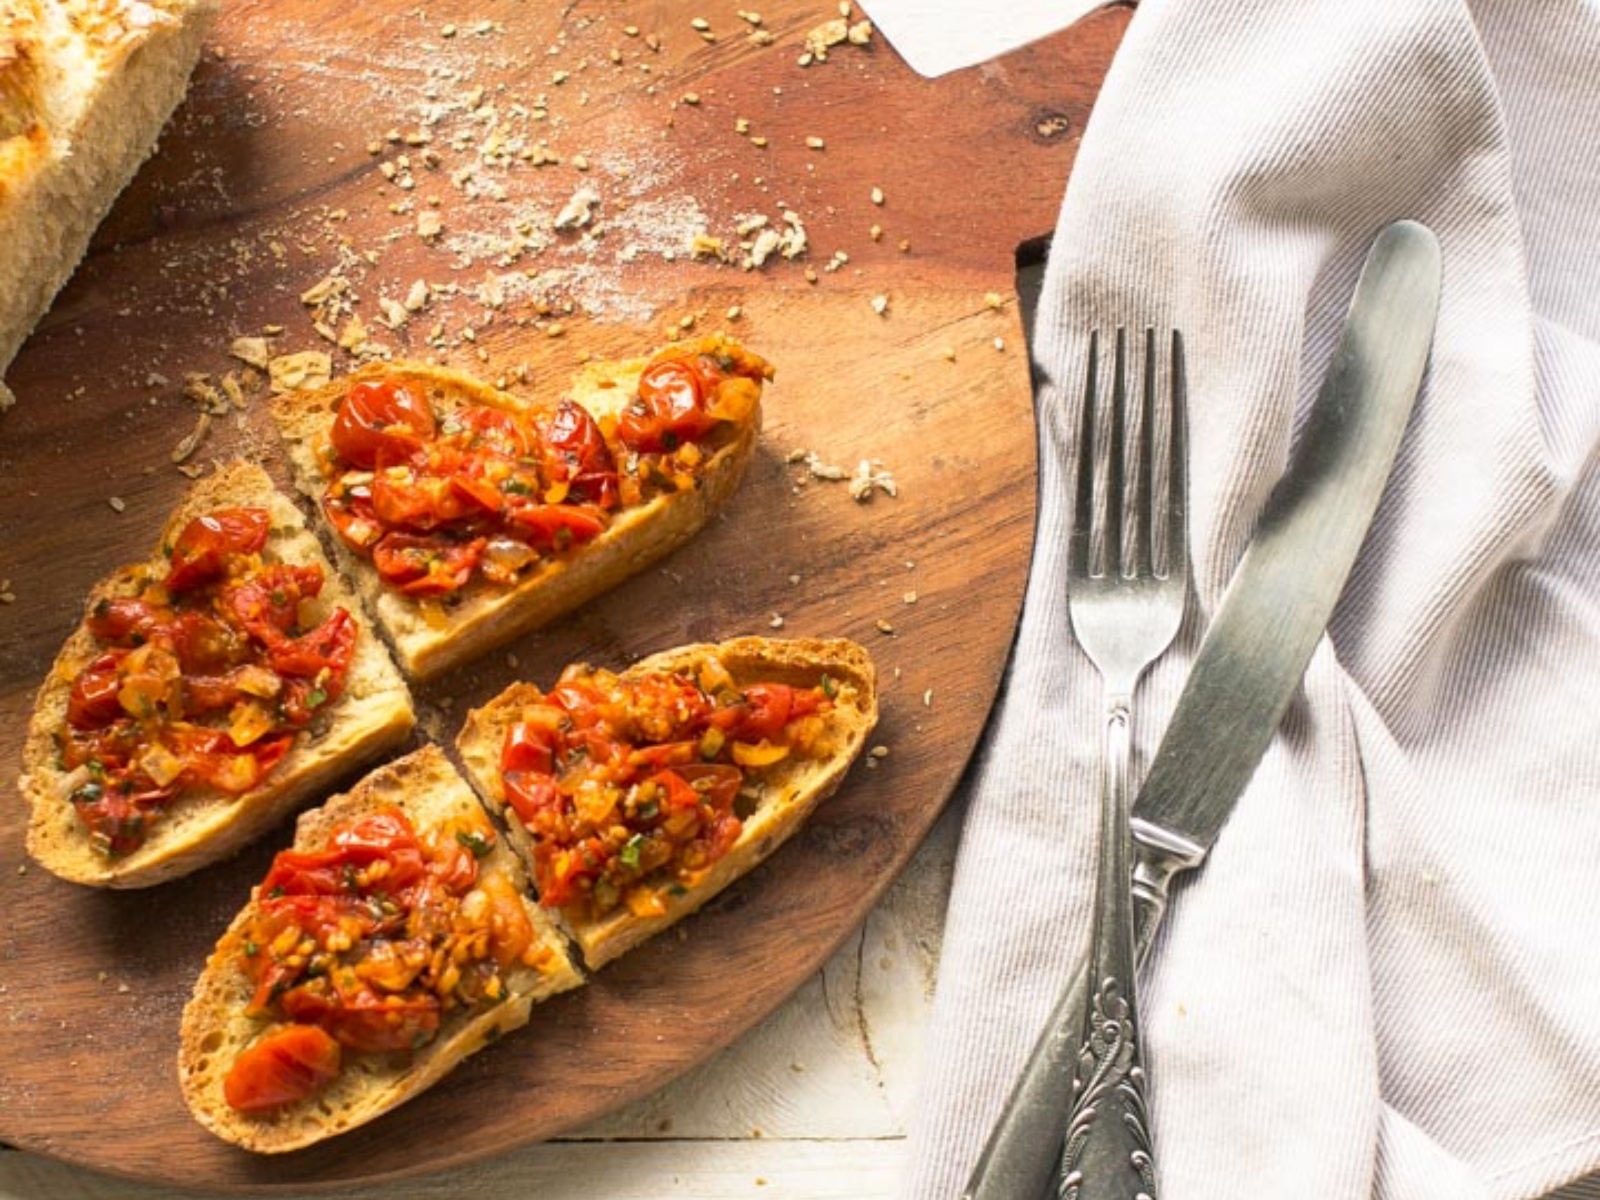 10 Creative Bruschetta Recipes that Will Transport You to Italy